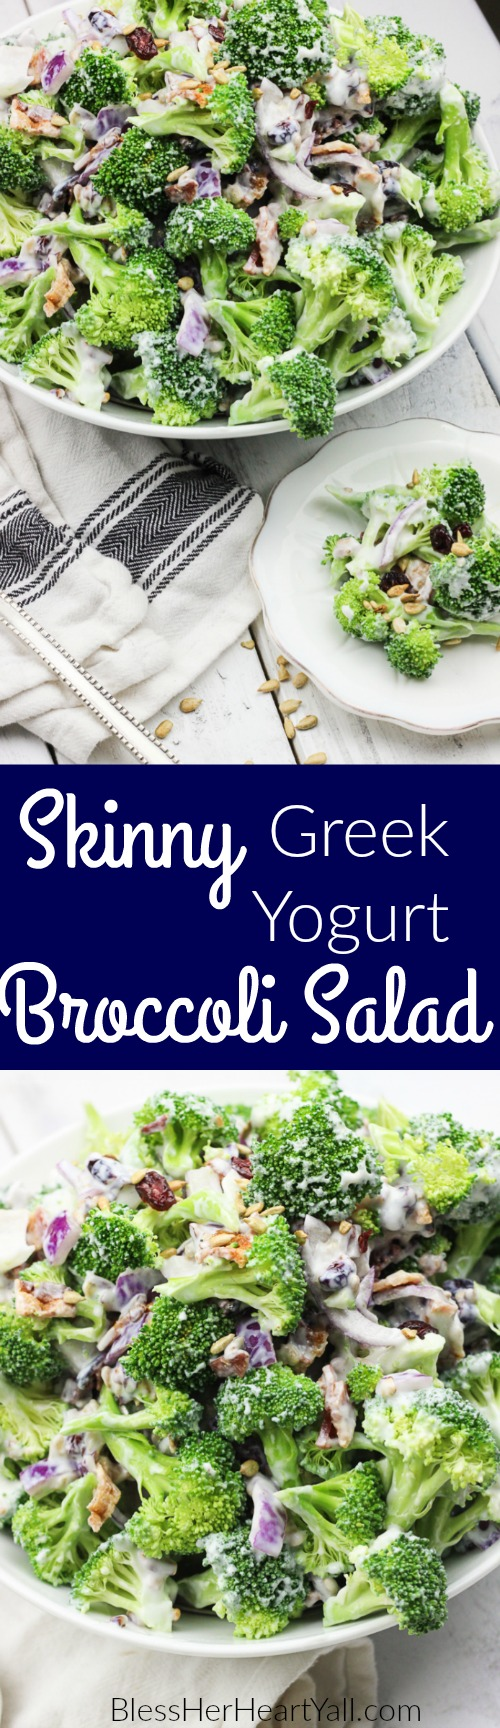 Skinny greek yogurt broccoli salad is a simple healthy veggie dish that combines fresh broccoli florets, dried cranberries, thick-cut bacon crumbles, and a sweet creamy dressing made with greek yogurt! It's the perfect healthy side dish forany meal! #skinny #healthy #broccolisalad #greekyogurt